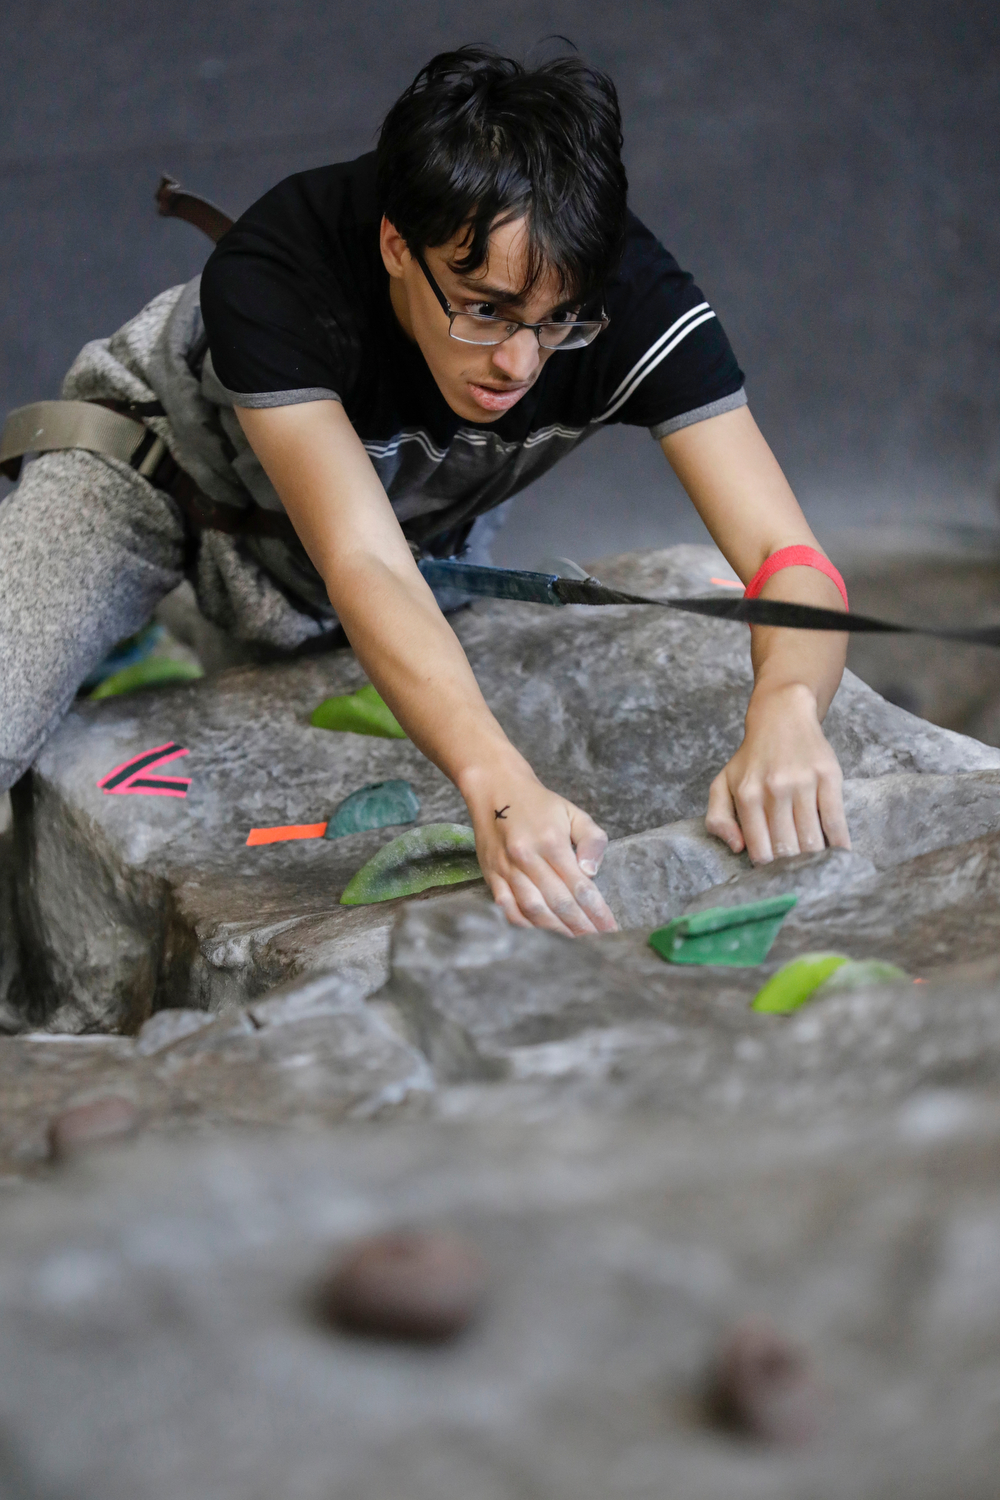 A student tries out rock climbing during the Campus Recreation open house at the Student Recreation Facility. Each semester, an open house is held for faculty, staff and students to see what Campus Recreation has to offer.